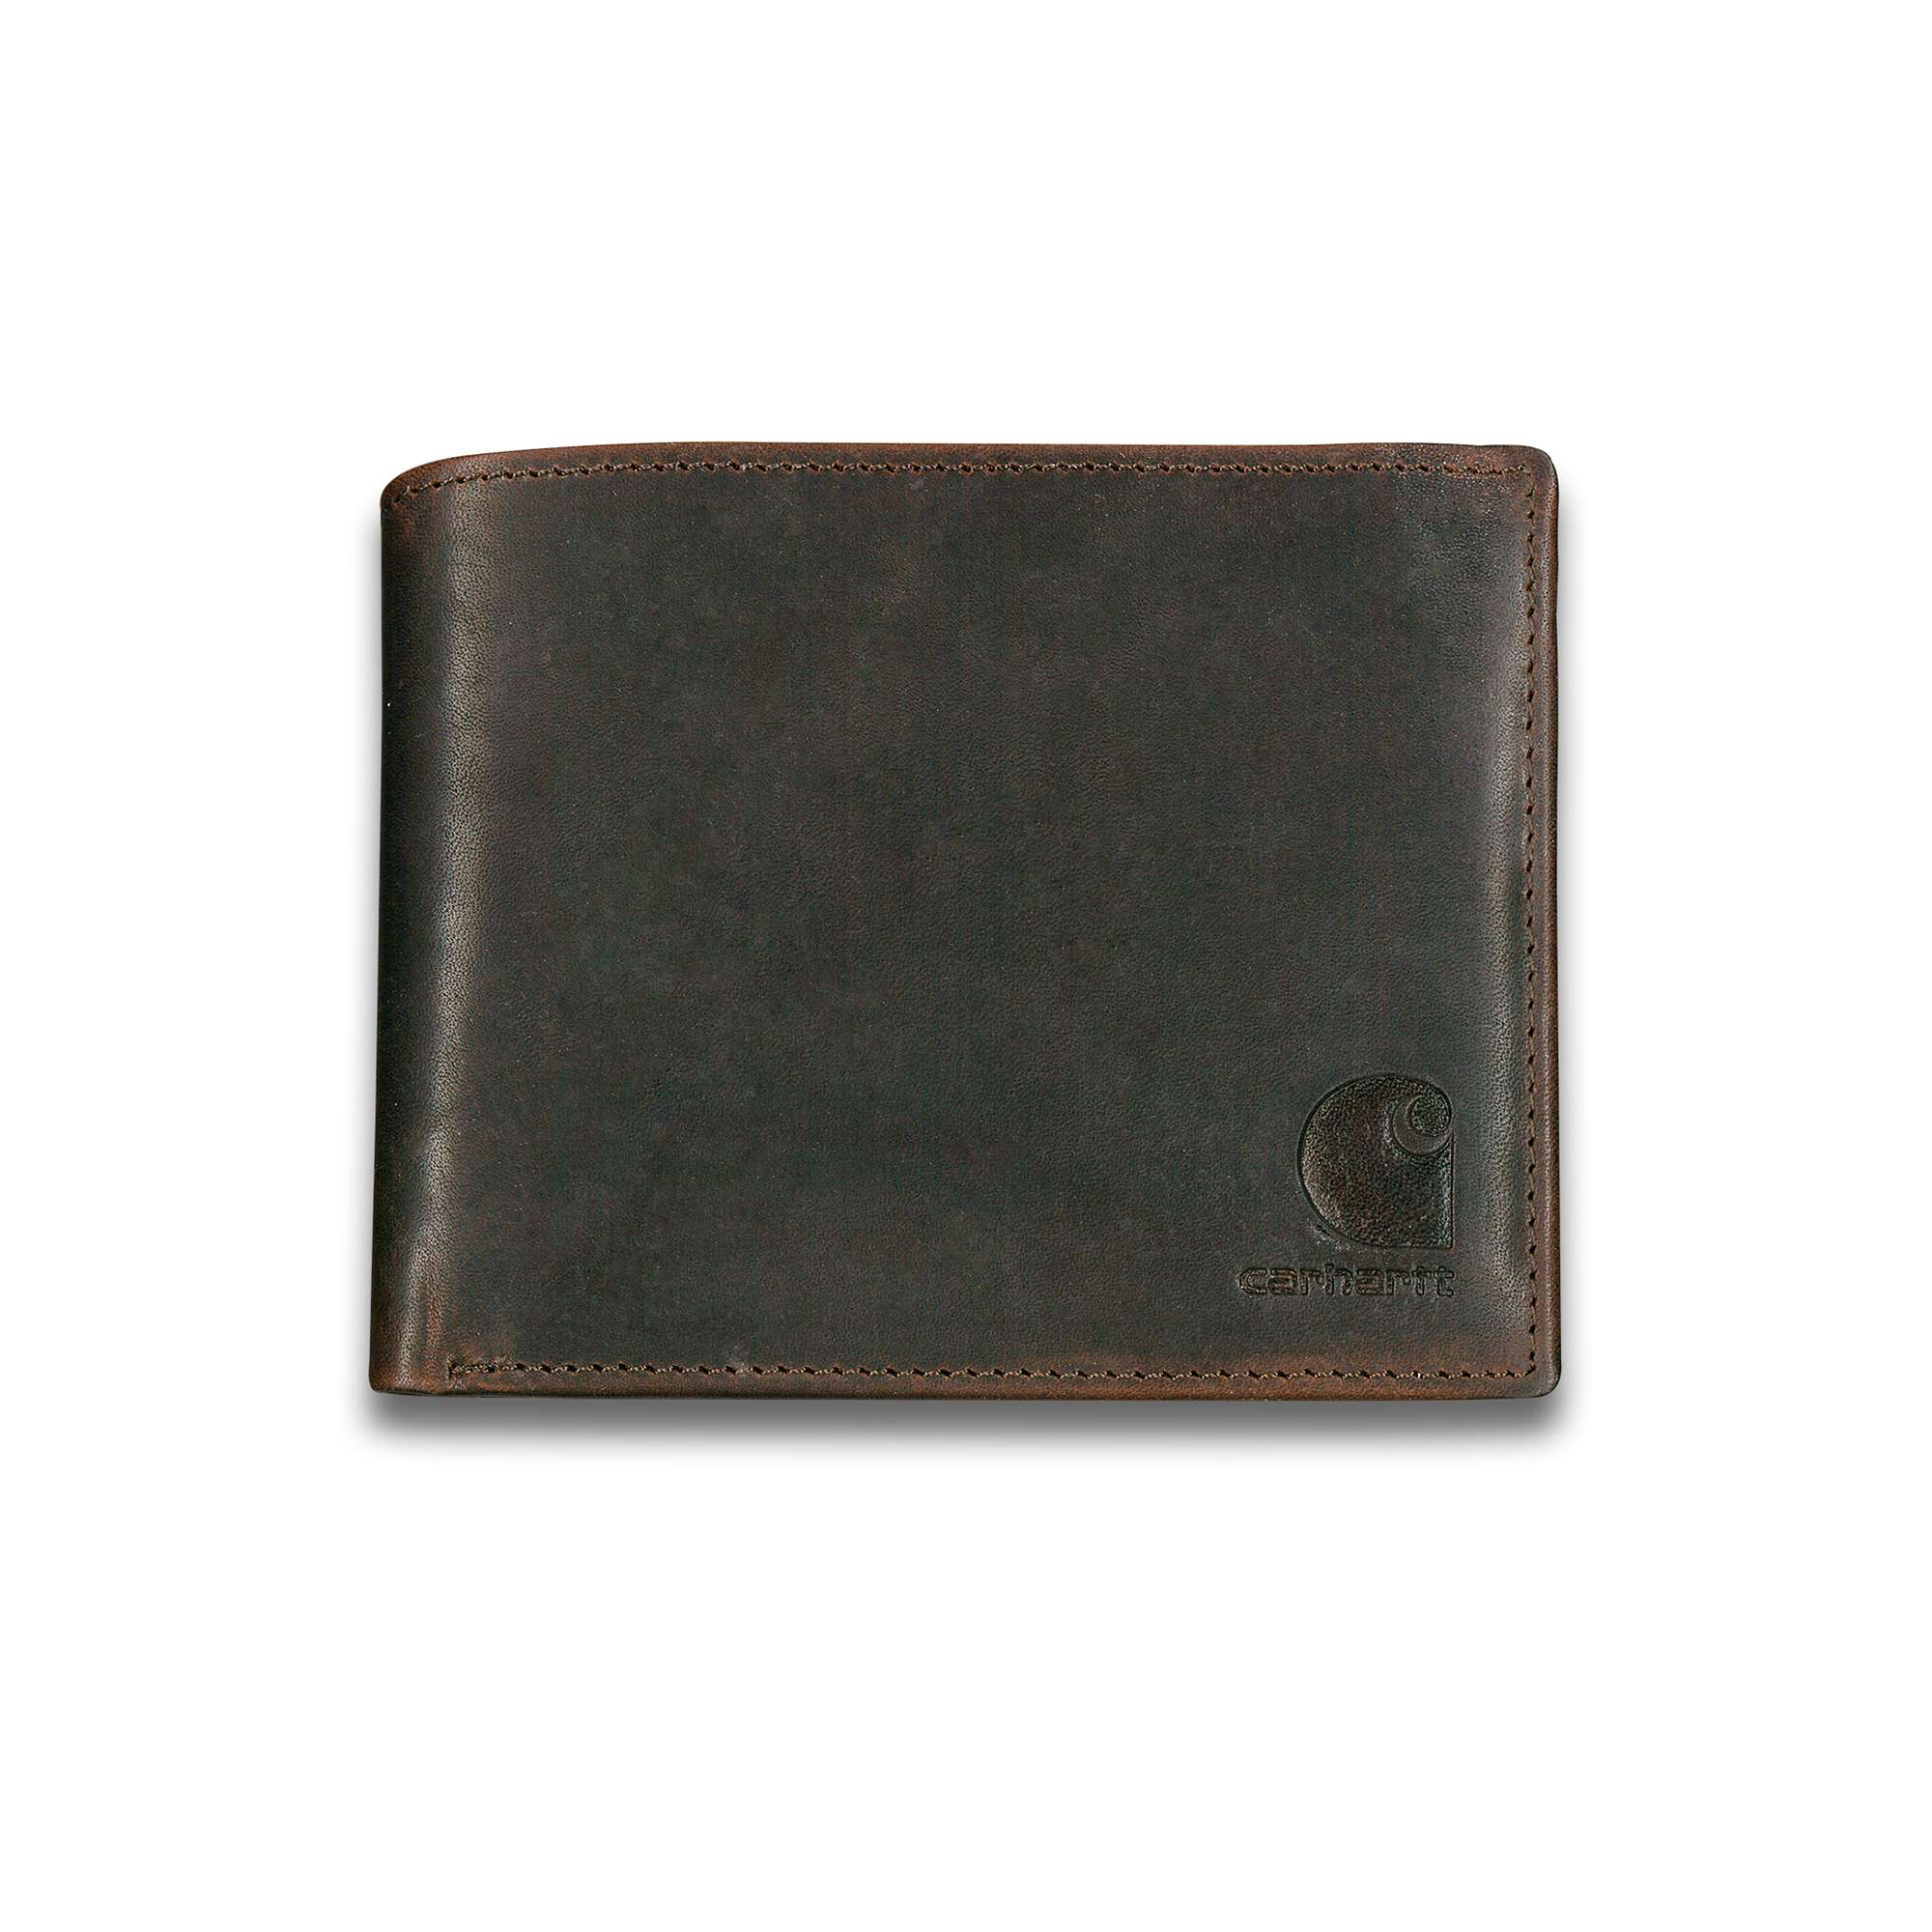 Carhartt Oil Tan Passcase Wallet